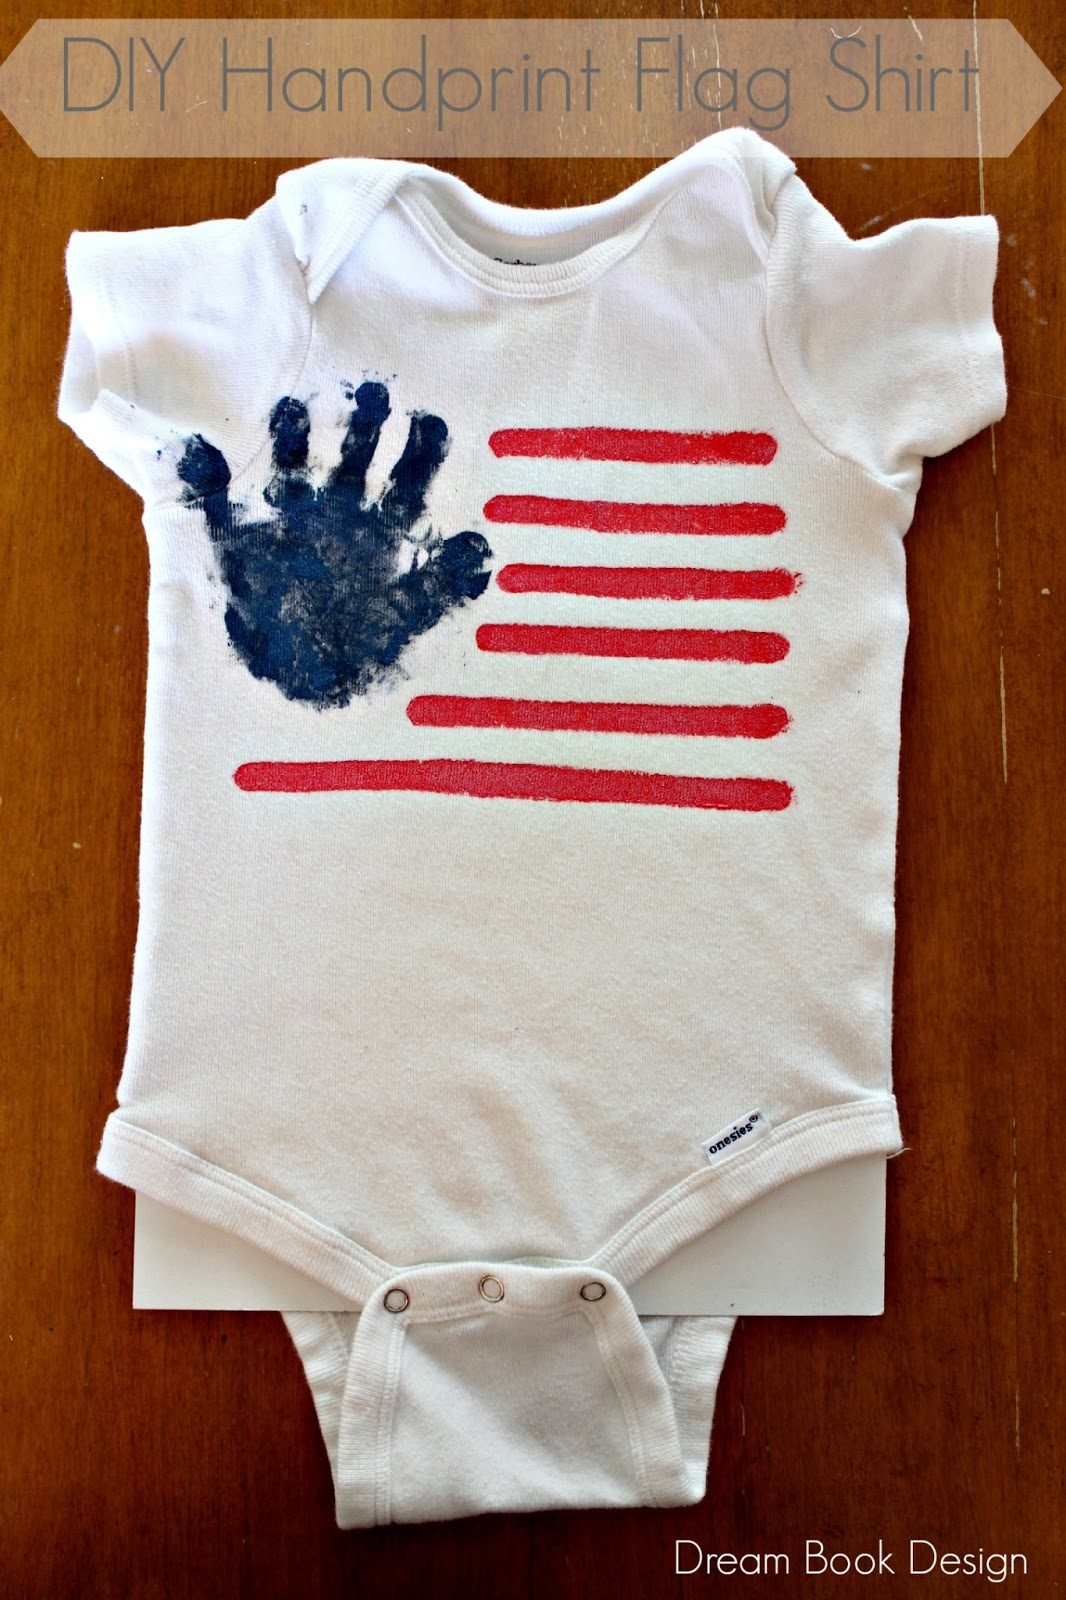 Design t shirt hand made - Diy 4th Of July Flag Shirt